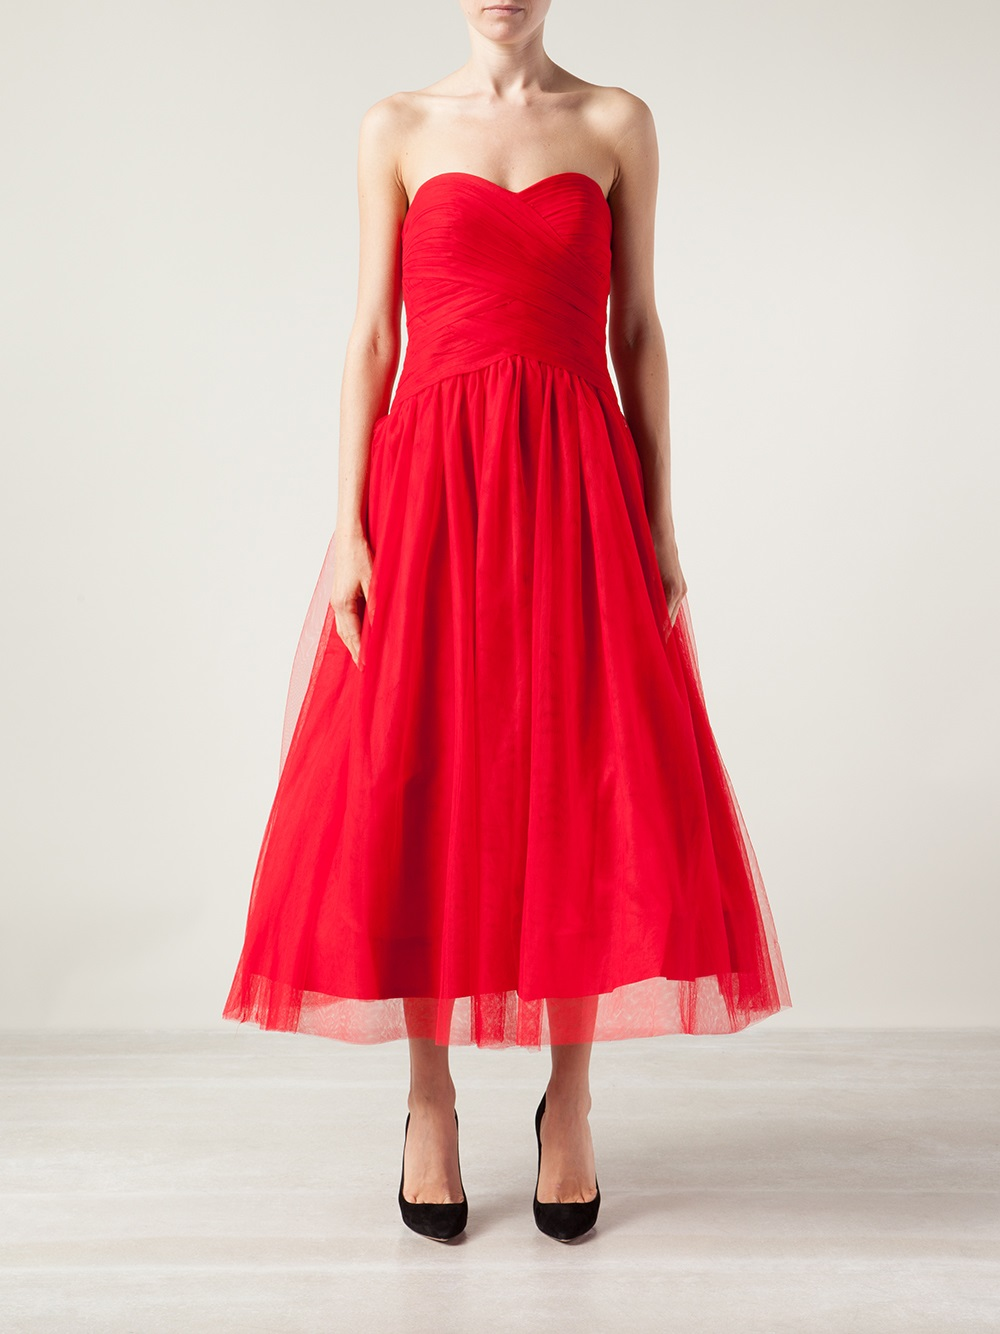 Lyst - Ml Monique Lhuillier Sweetheart Tulle Gown in Red